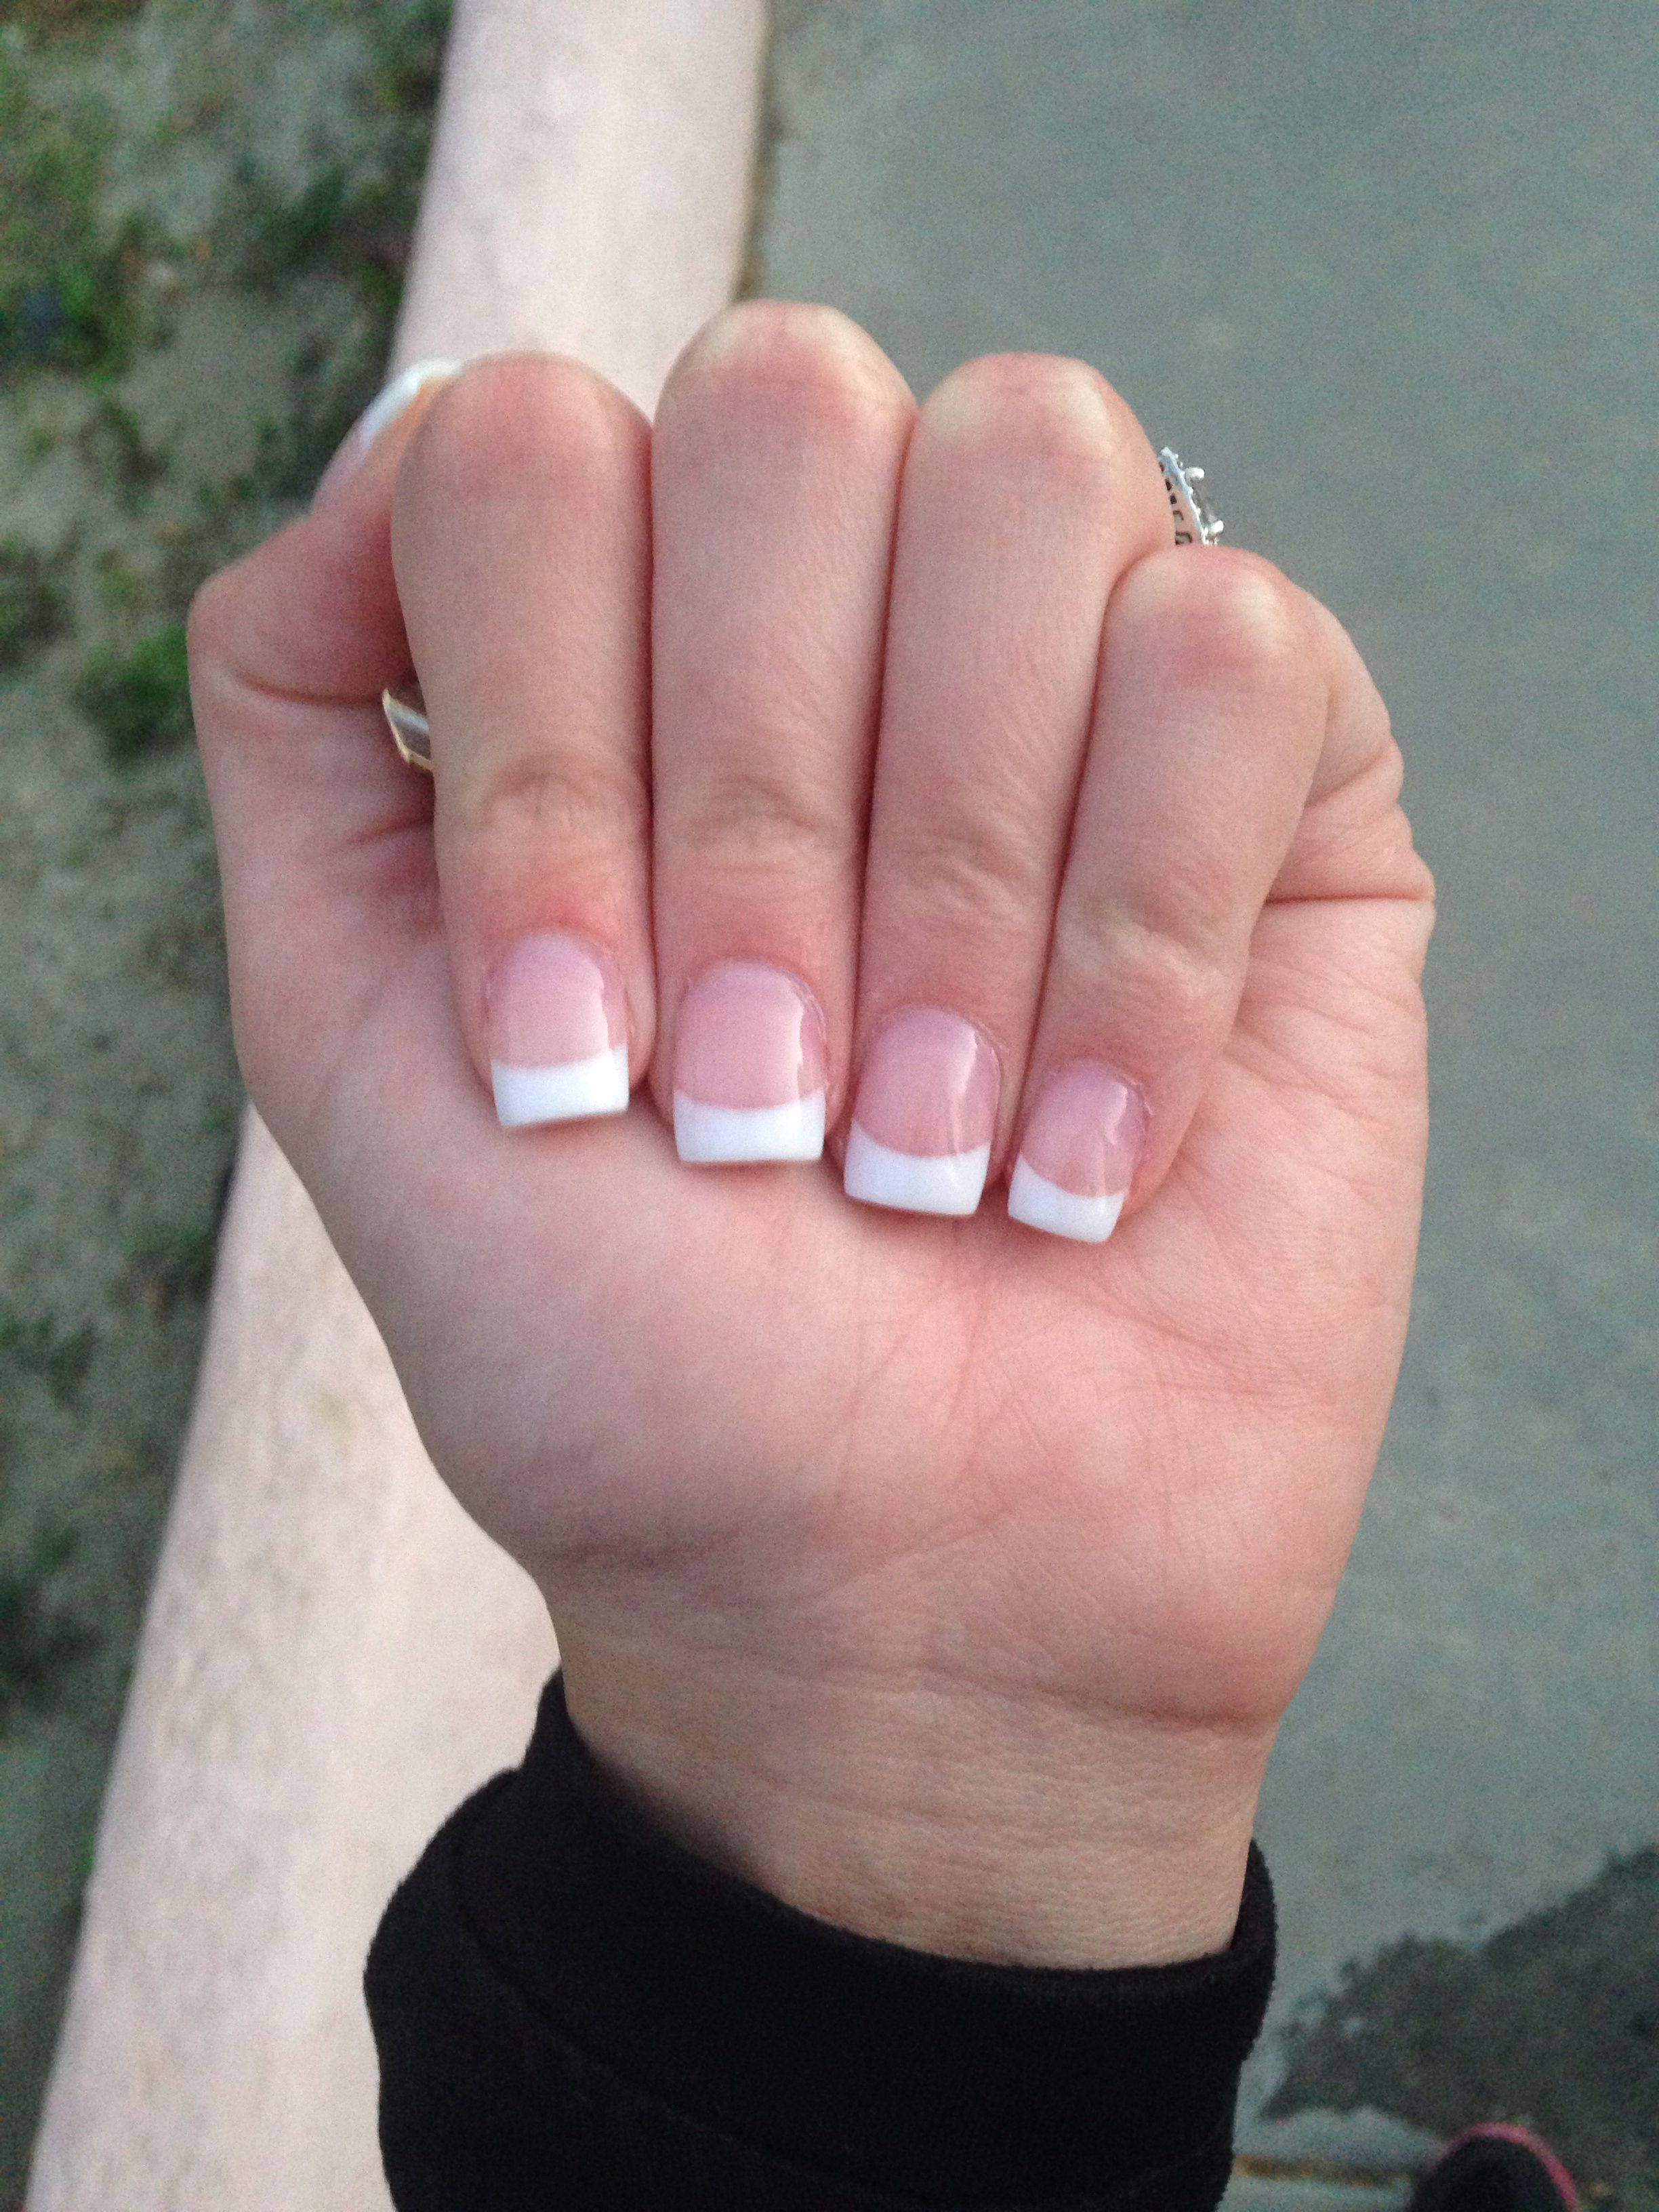 Acrylic pink and white nails | nails | Pinterest | White nails ...